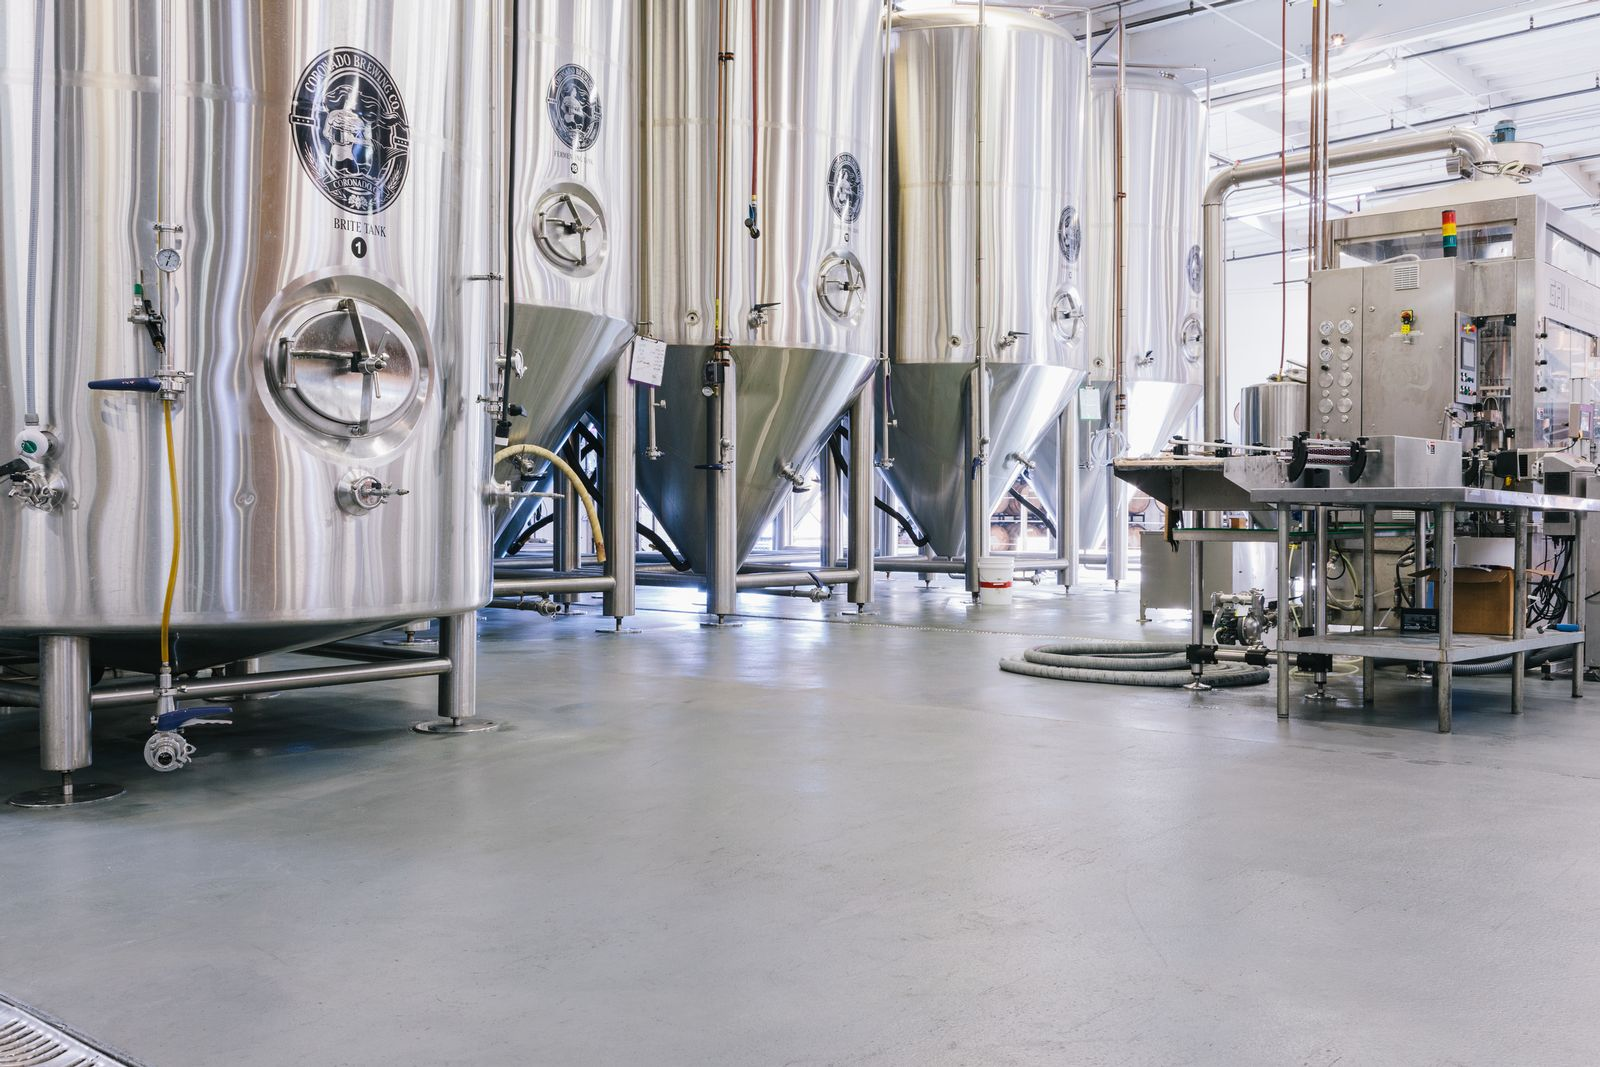 Stonhard concrete floor in brewery faced challenges